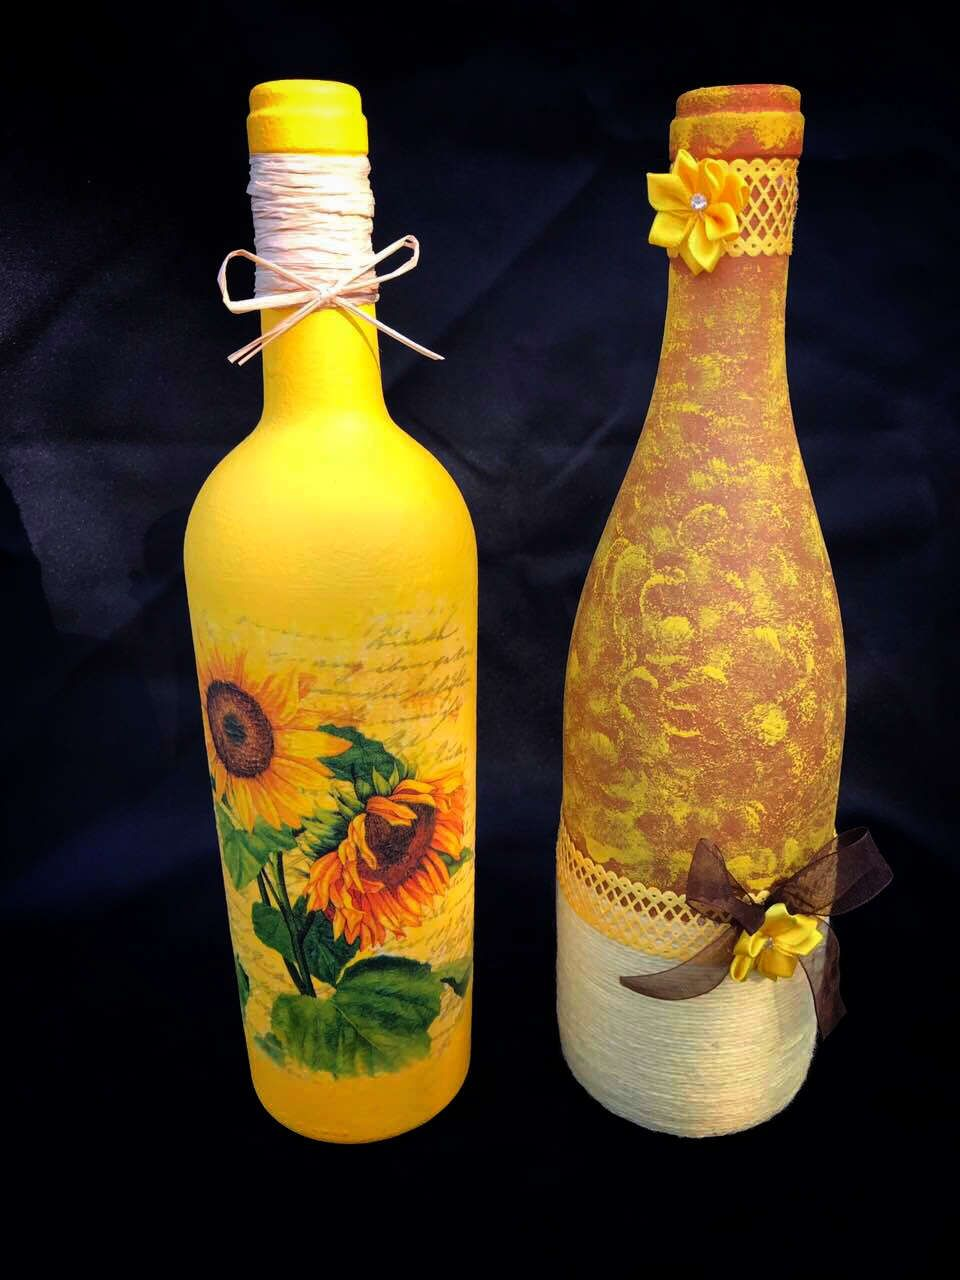 decorated glass bottles. Decorated Wine Glass Bottles Set Decoupage Craft  Art Sunflowers Home Decor Table Display Yarn Centerpieces